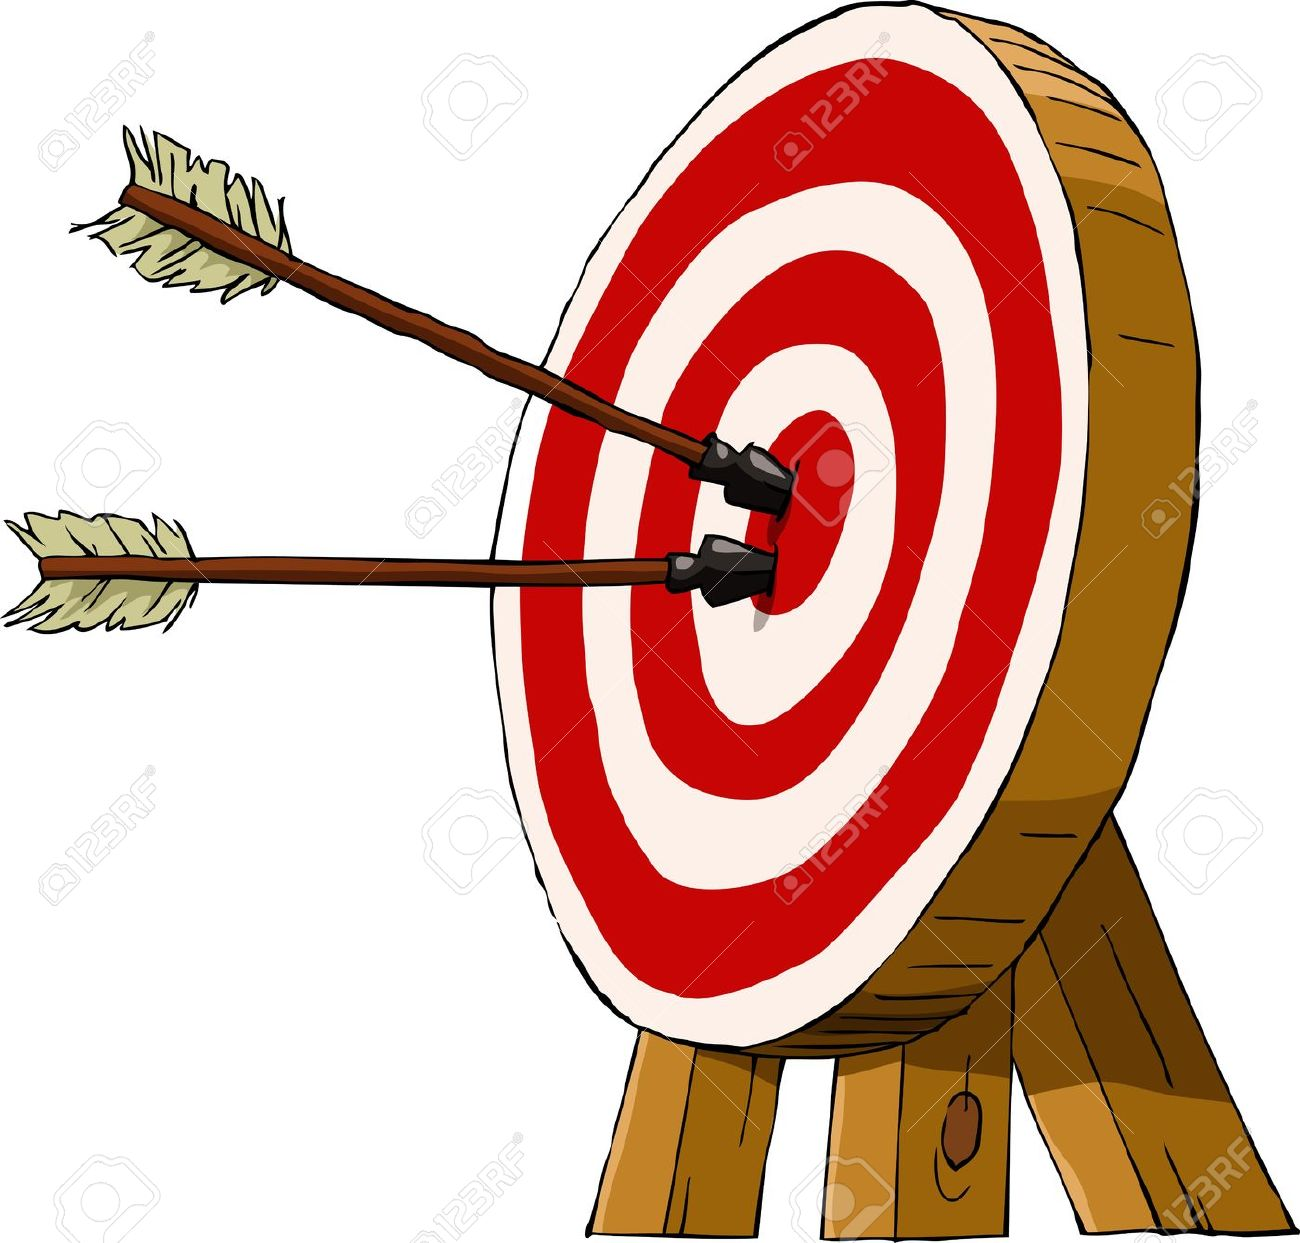 Archery Target Clipart | Free download on ClipArtMag